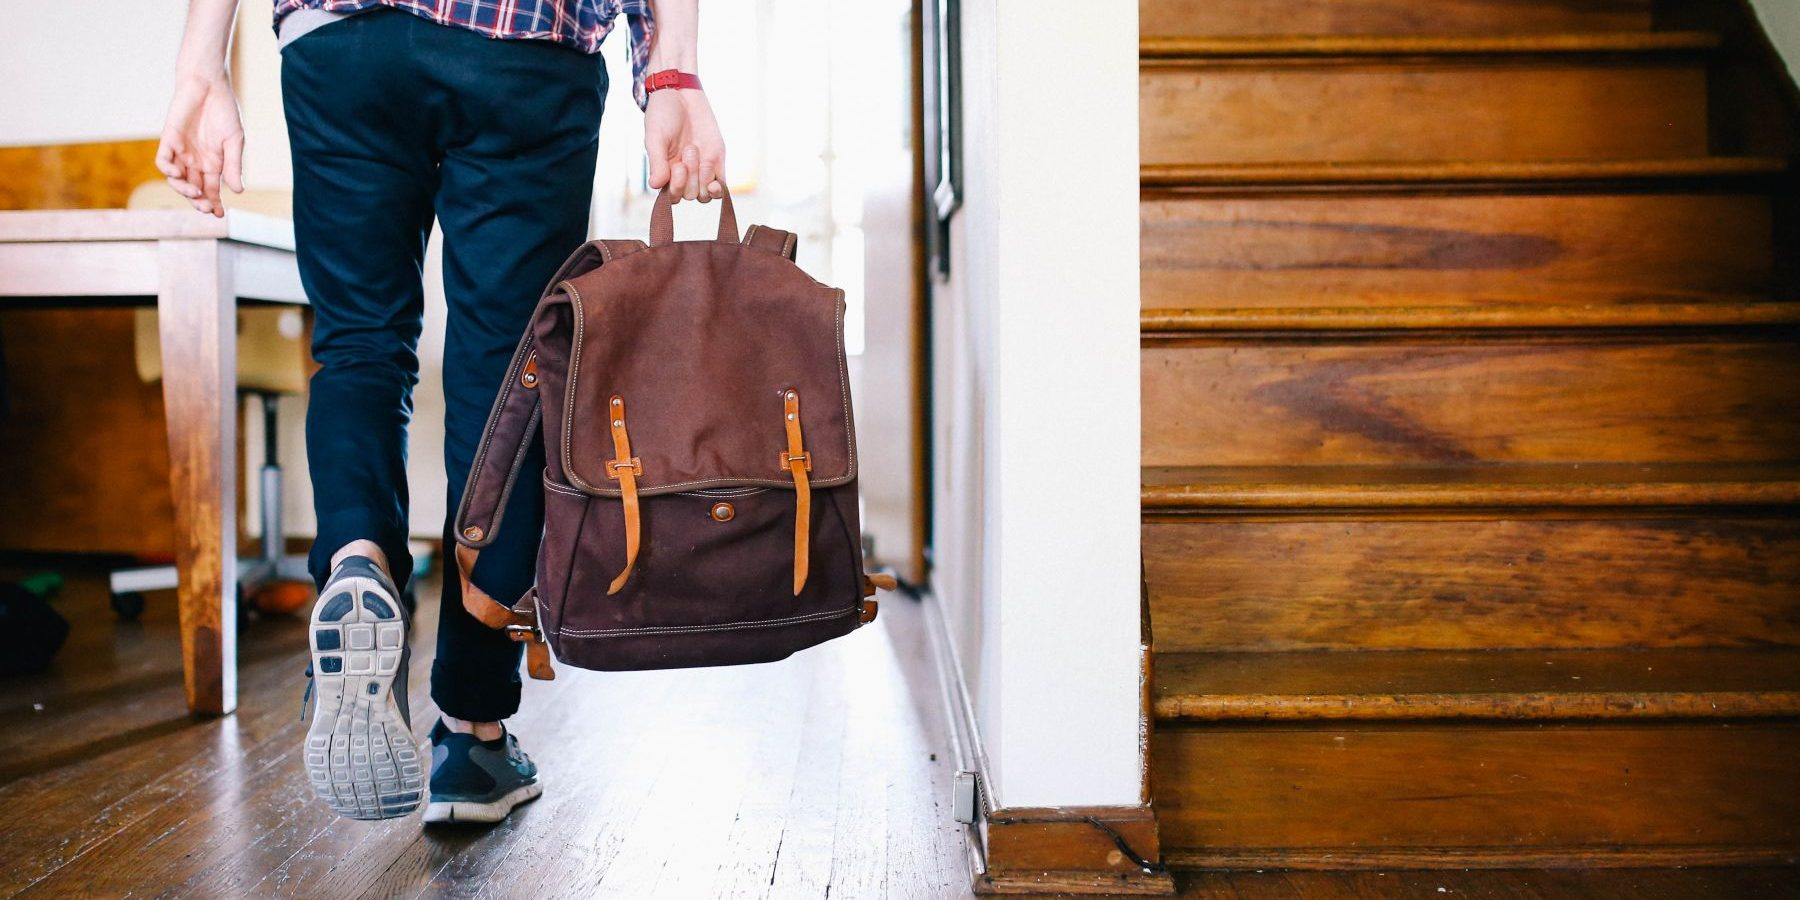 Person with back-pack walking.